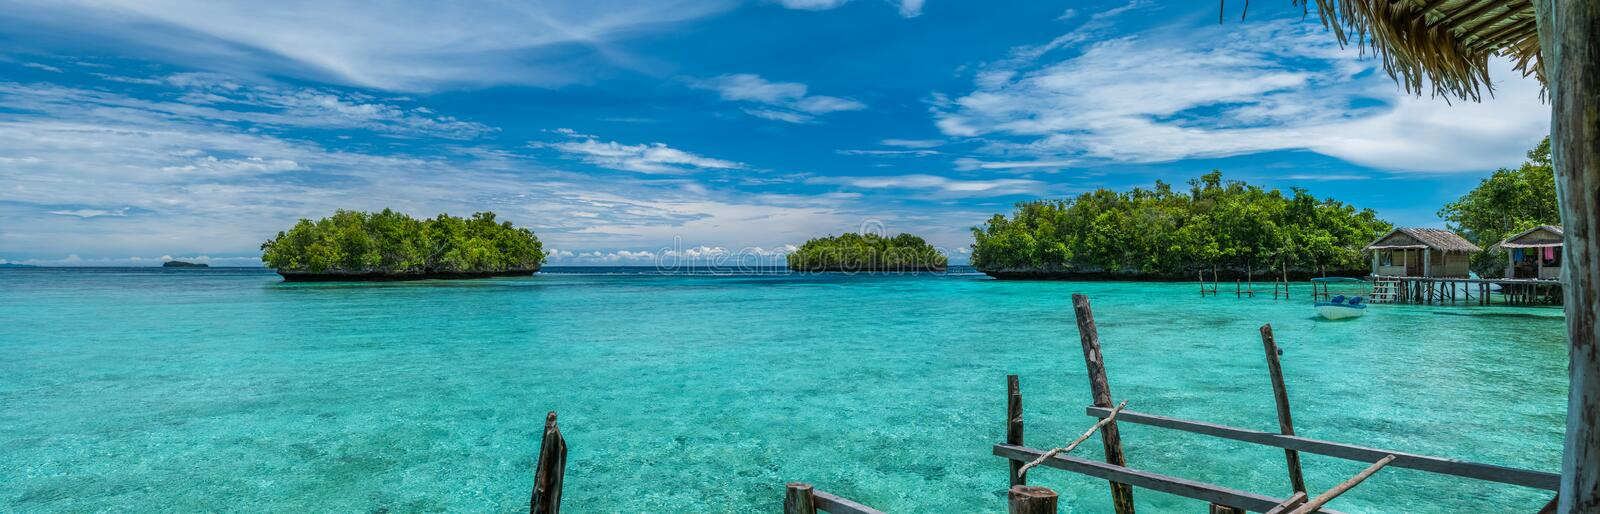 Beautiful Blue Lagoone with some Bamboo Huts, Kordiris Homestay, Palmtree in Front, Gam Island, West Papuan, Raja Ampat. Indonesia stock photography